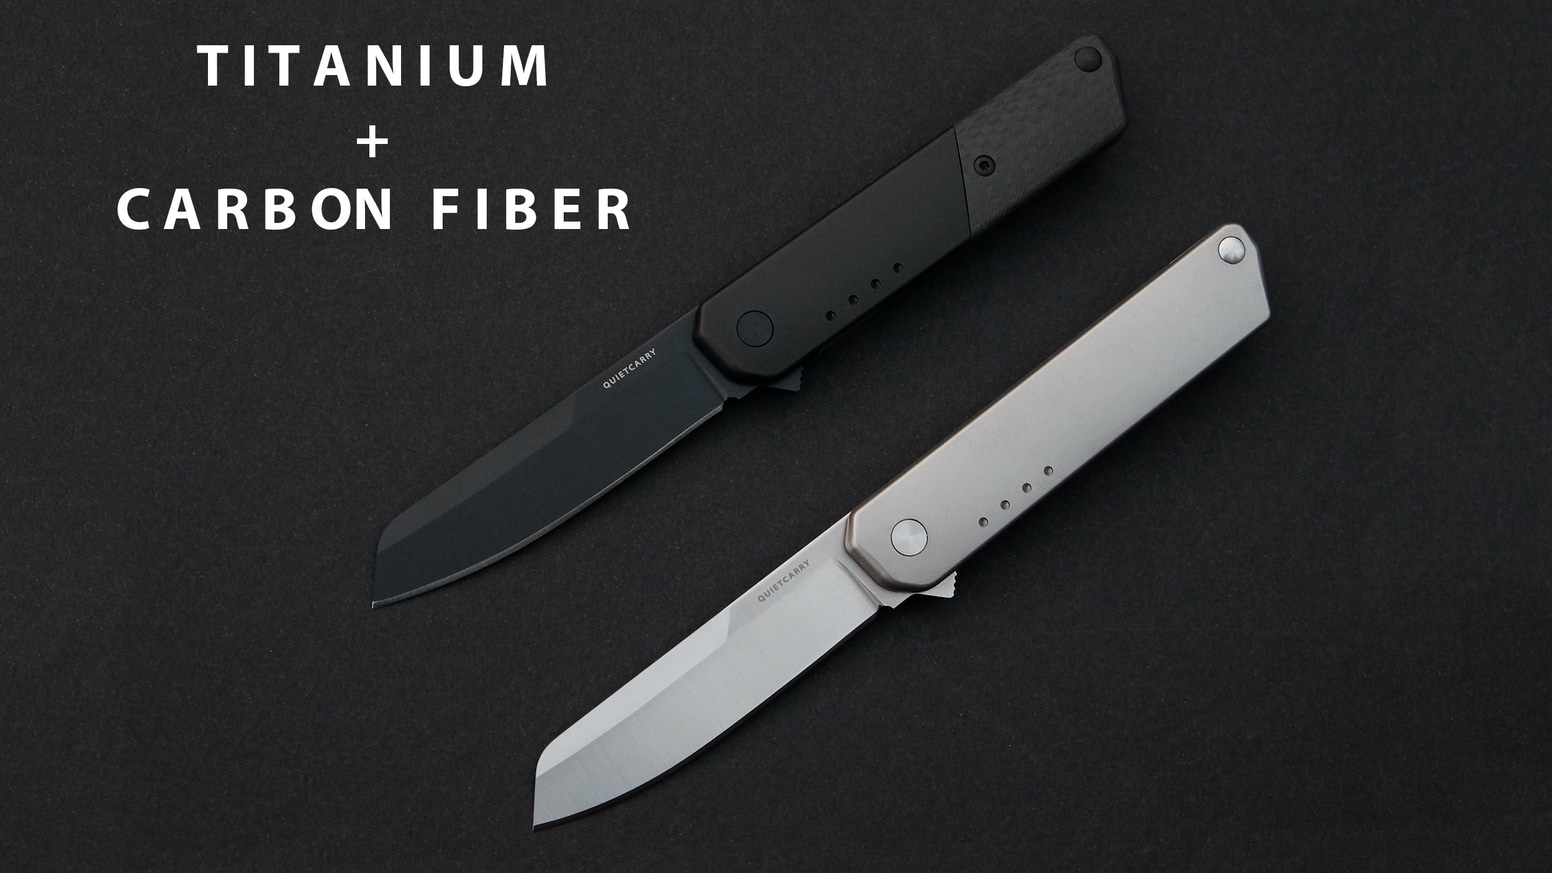 This sleek EDC knife handles tasks like a beast yet is aesthetically refined - an everyday carry designed to take around town.